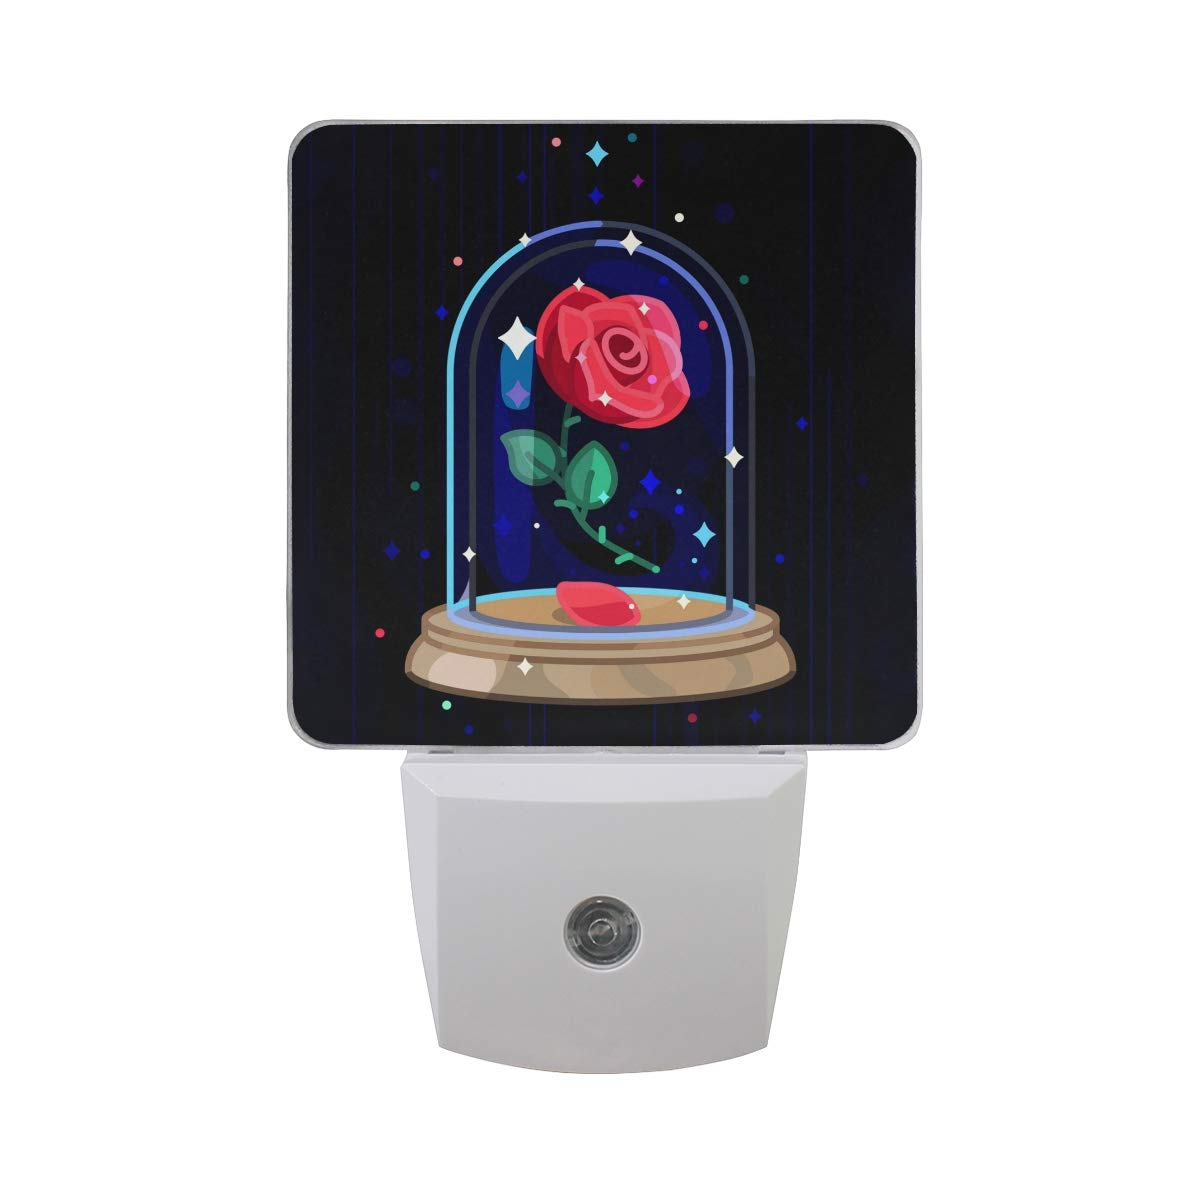 Naanle Set of 2 Luxury Cute Single Red Rose Flower Under Glass Dome Art On Dark Black Auto Sensor LED Dusk to Dawn Night Light Plug in Indoor for Adults